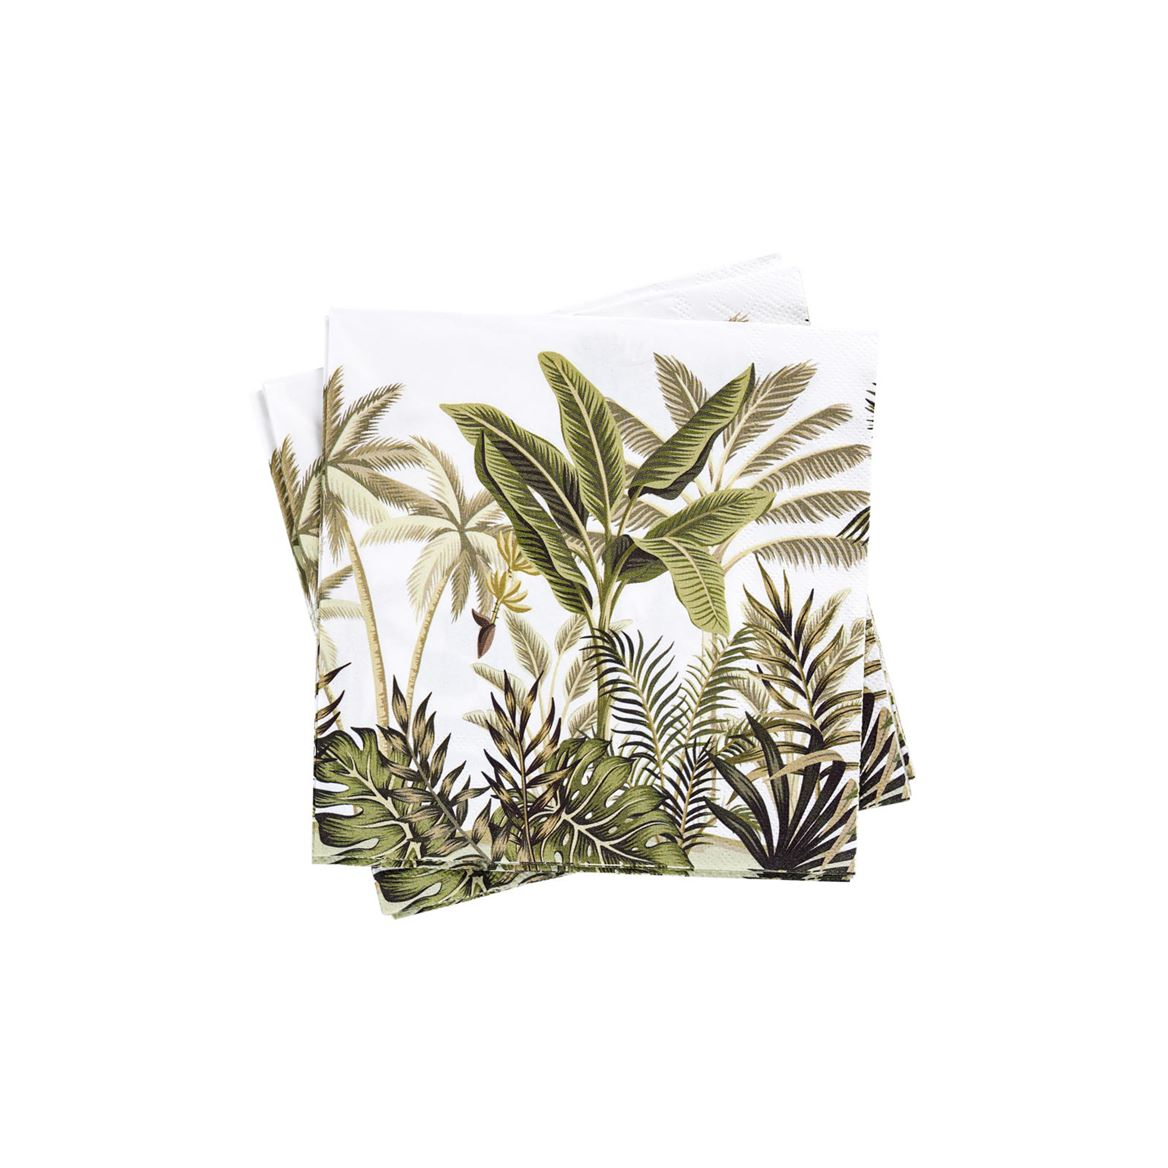 JUNGLE TREES Set de 20 serviettes vert Larg. 33 x Long. 33 cm_jungle-trees-set-de-20-serviettes-vert-larg--33-x-long--33-cm